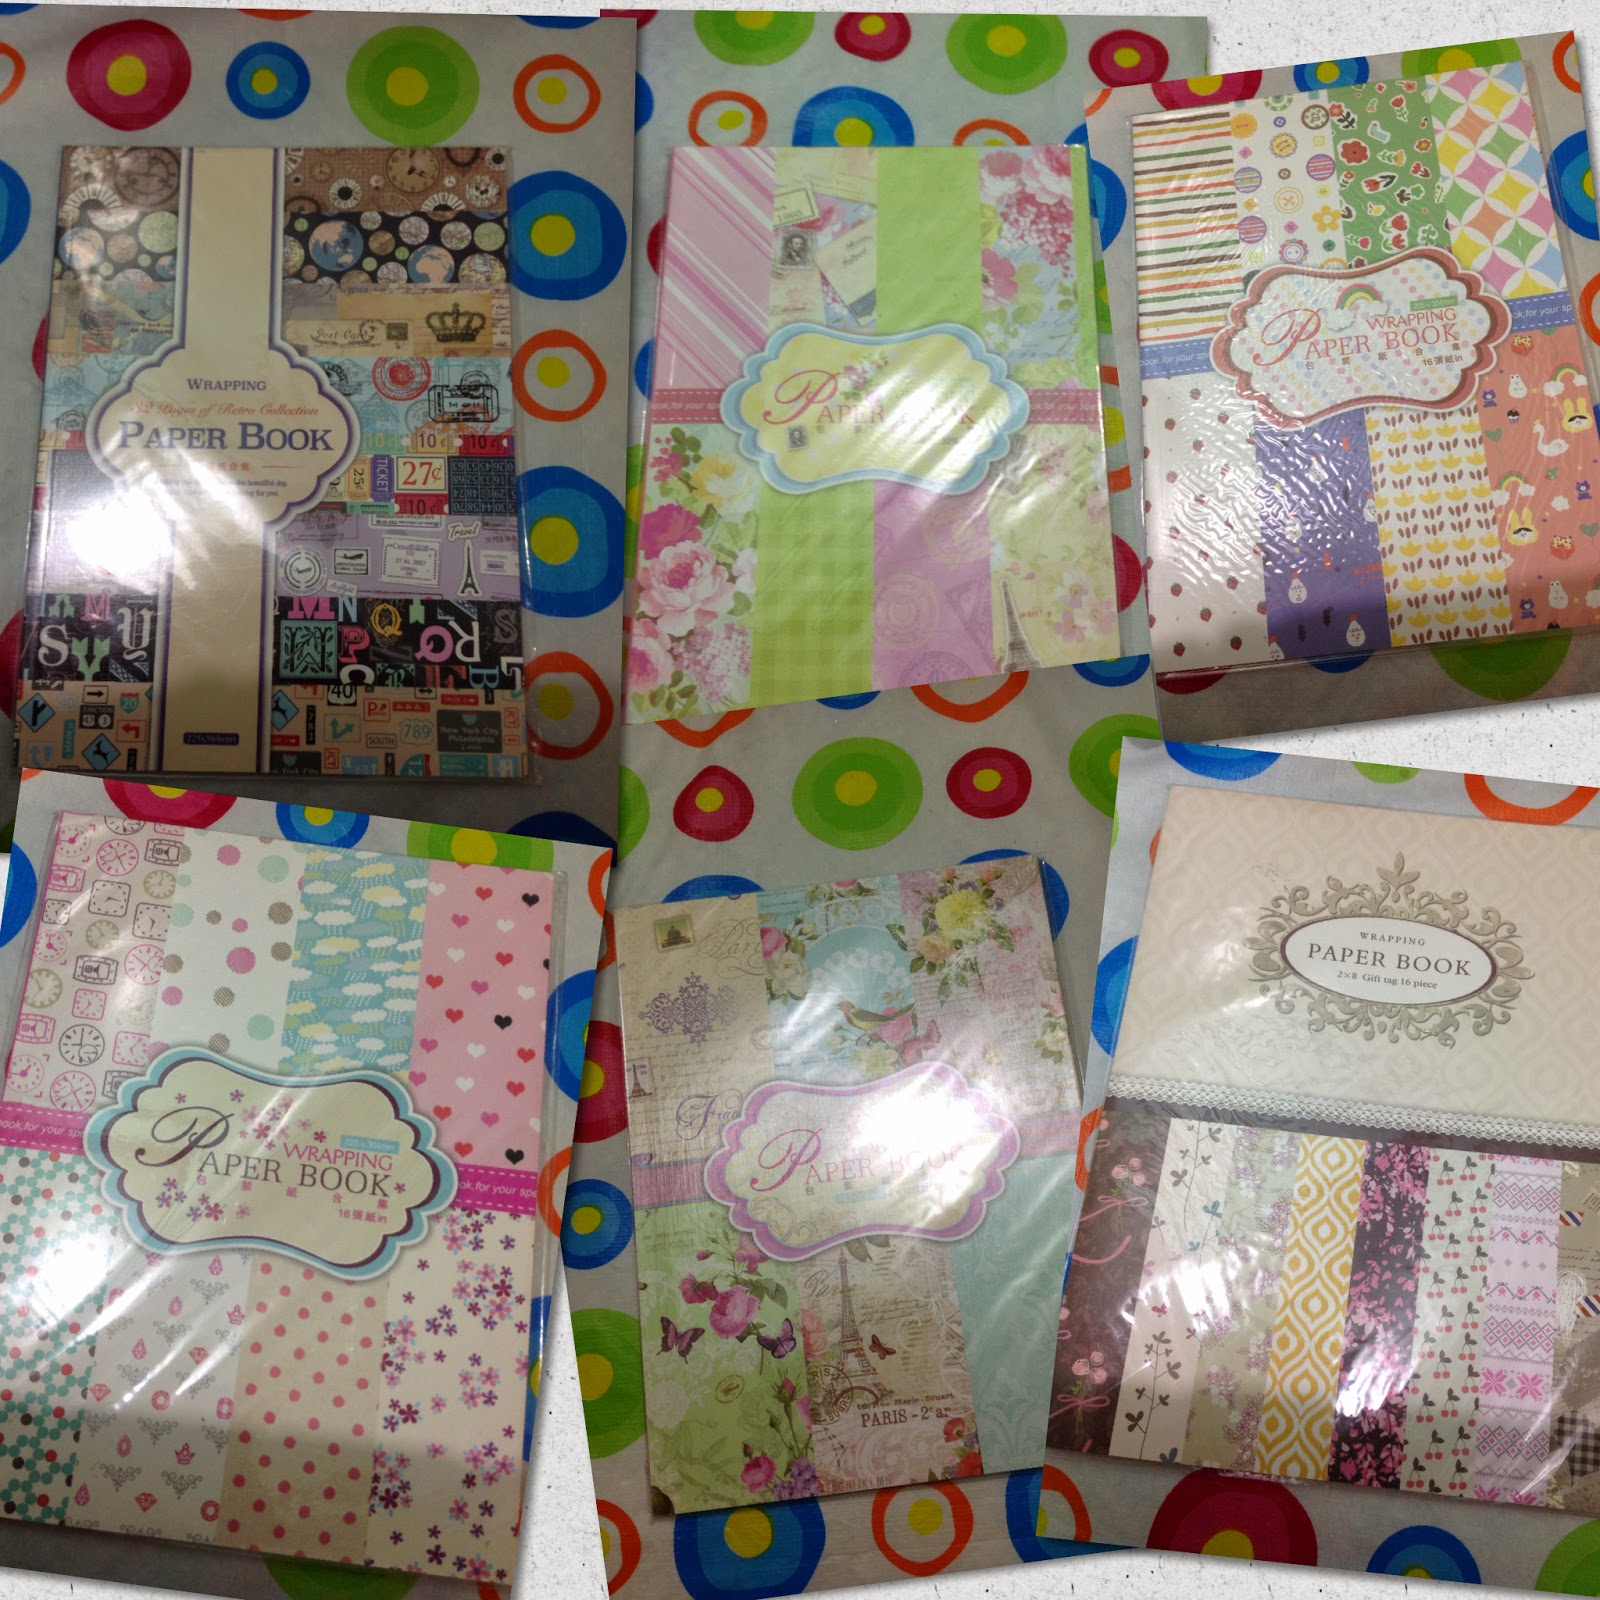 How to scrapbook materials - Wrapping Paper Books My Heart Jumped When I Saw These Right Now I Have A Lot Of Projects In My Mind That I Want To Make Using These Beauties